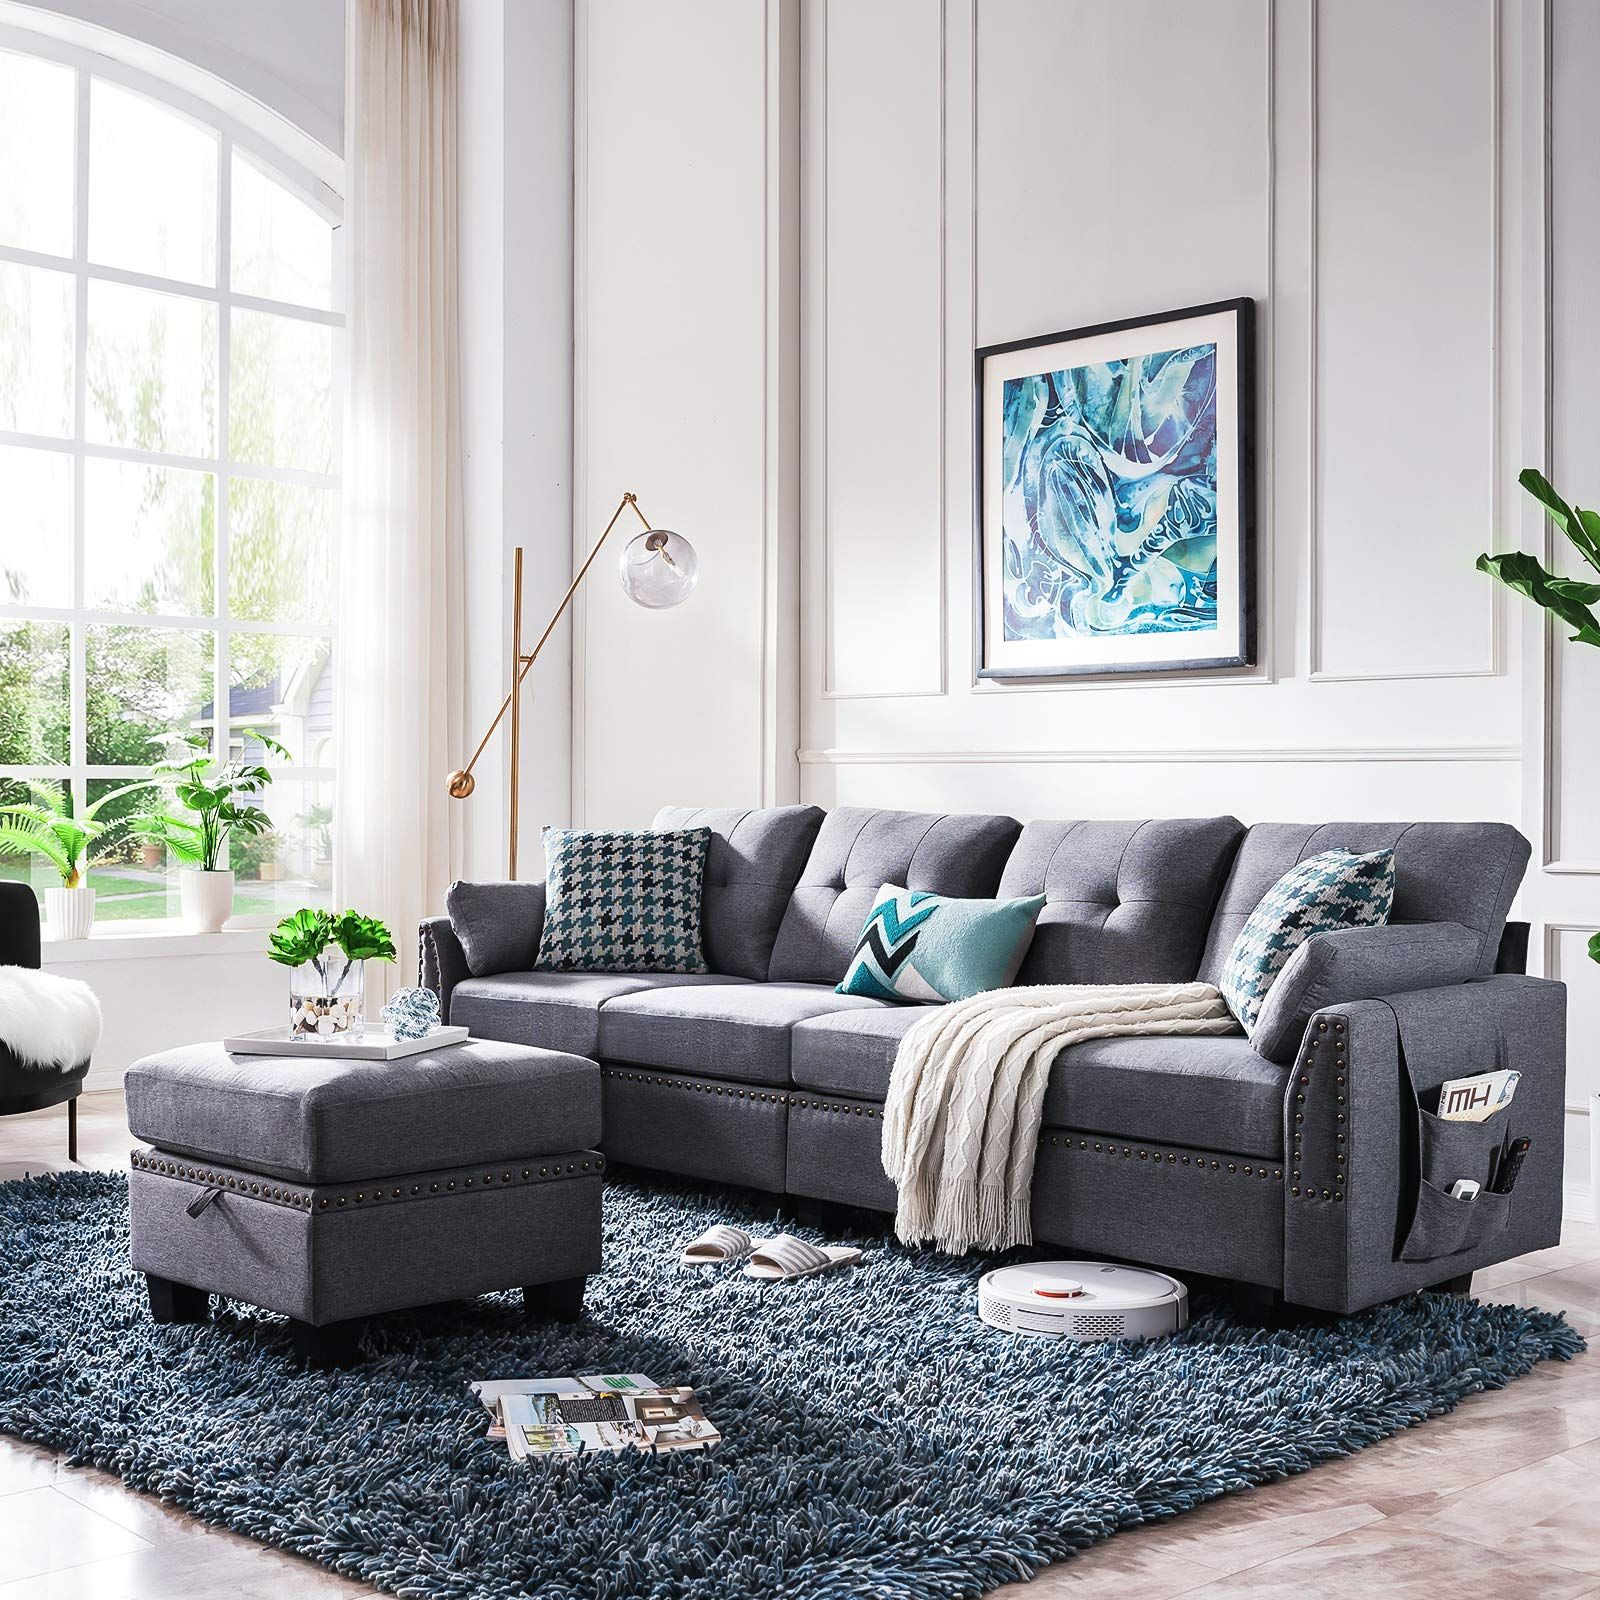 Amazon Com Honbay Reversible Sectional Sofa Couch For Living Room L Shape Sofa C In 2020 Grey Couch Living Room Dark Grey Couch Living Room Dark Grey Sofa Living Room